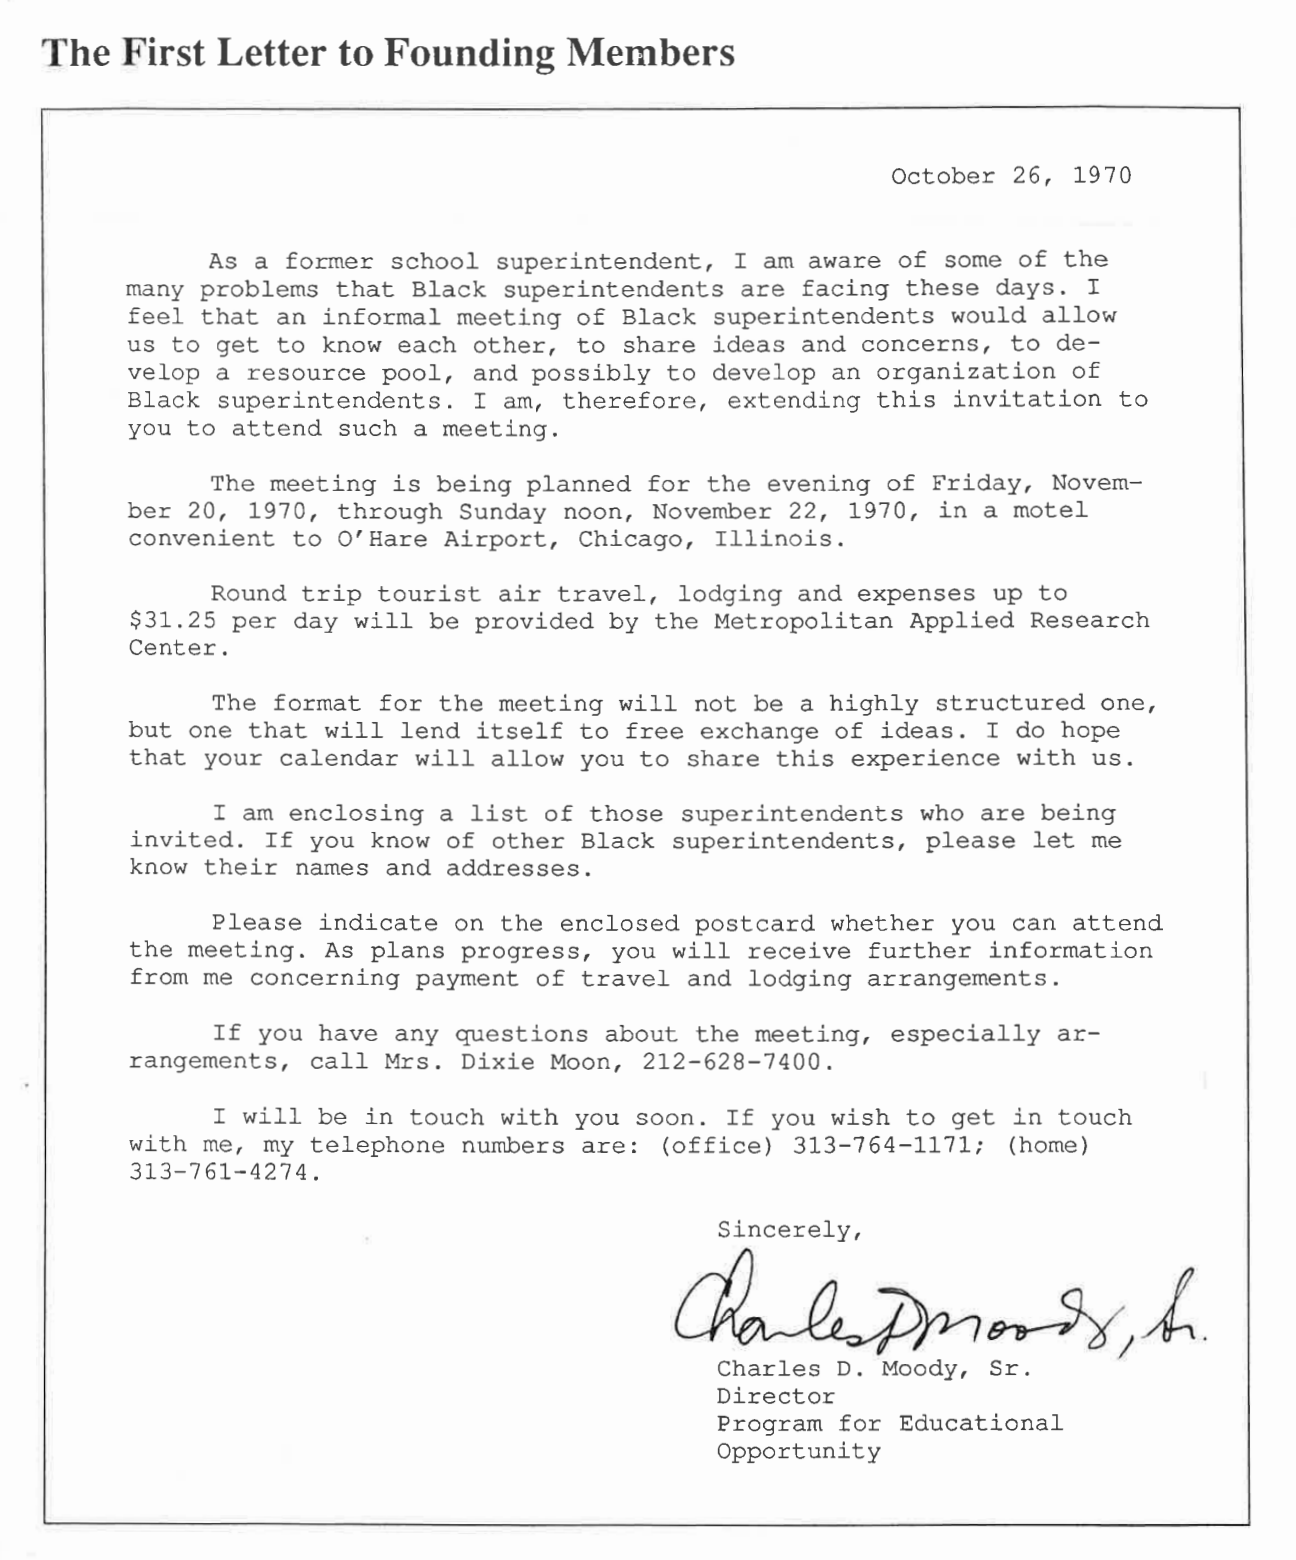 First Letter to the Founding Members